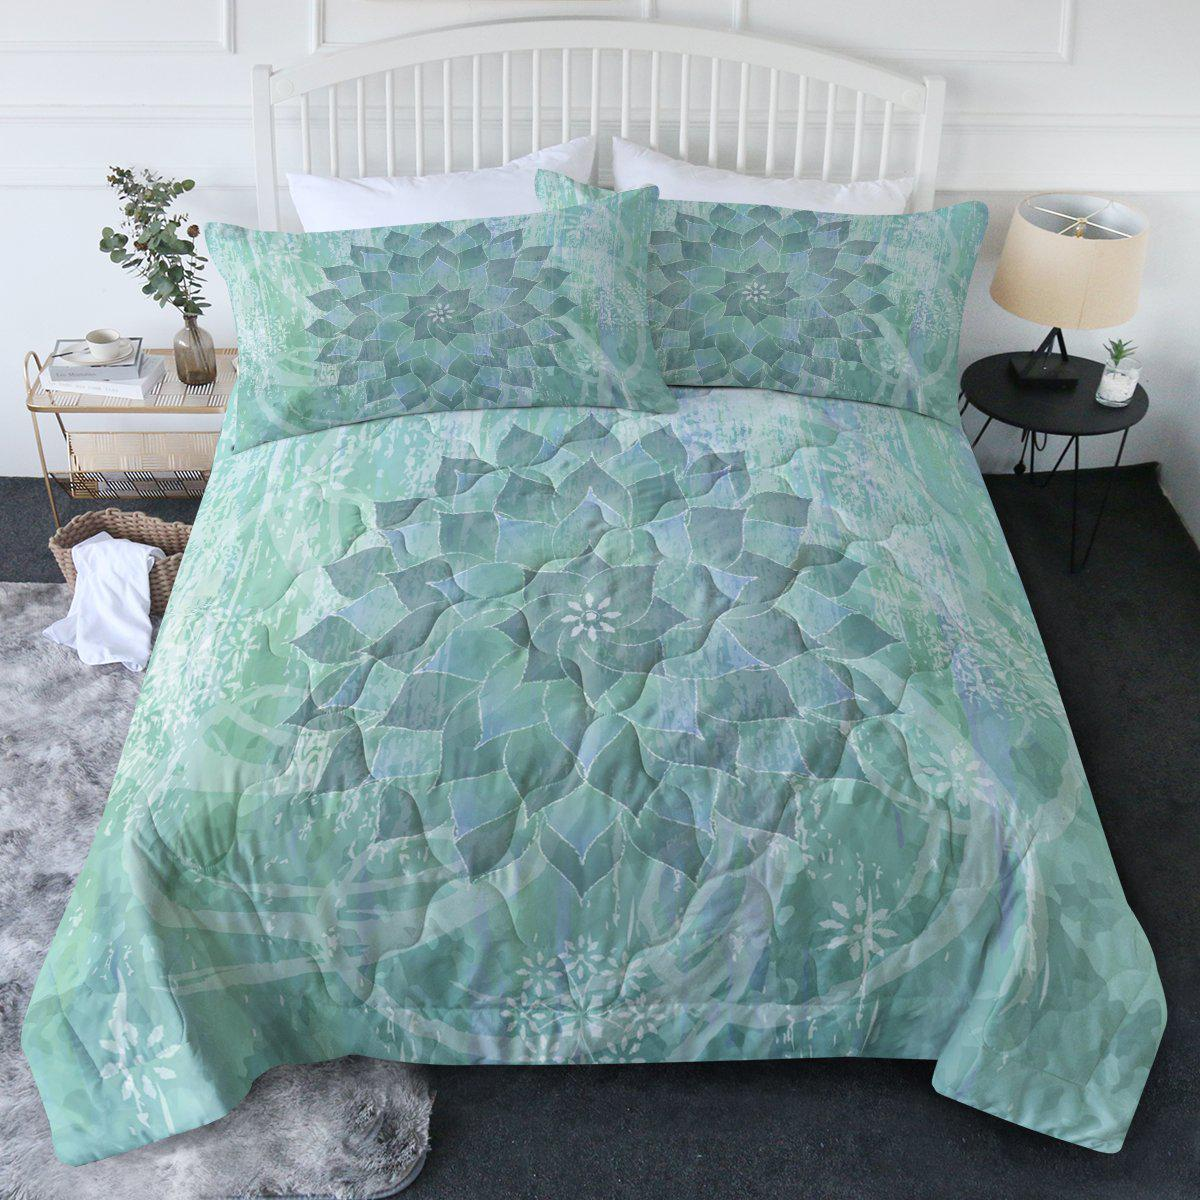 The Ocean Hues Comforter Set